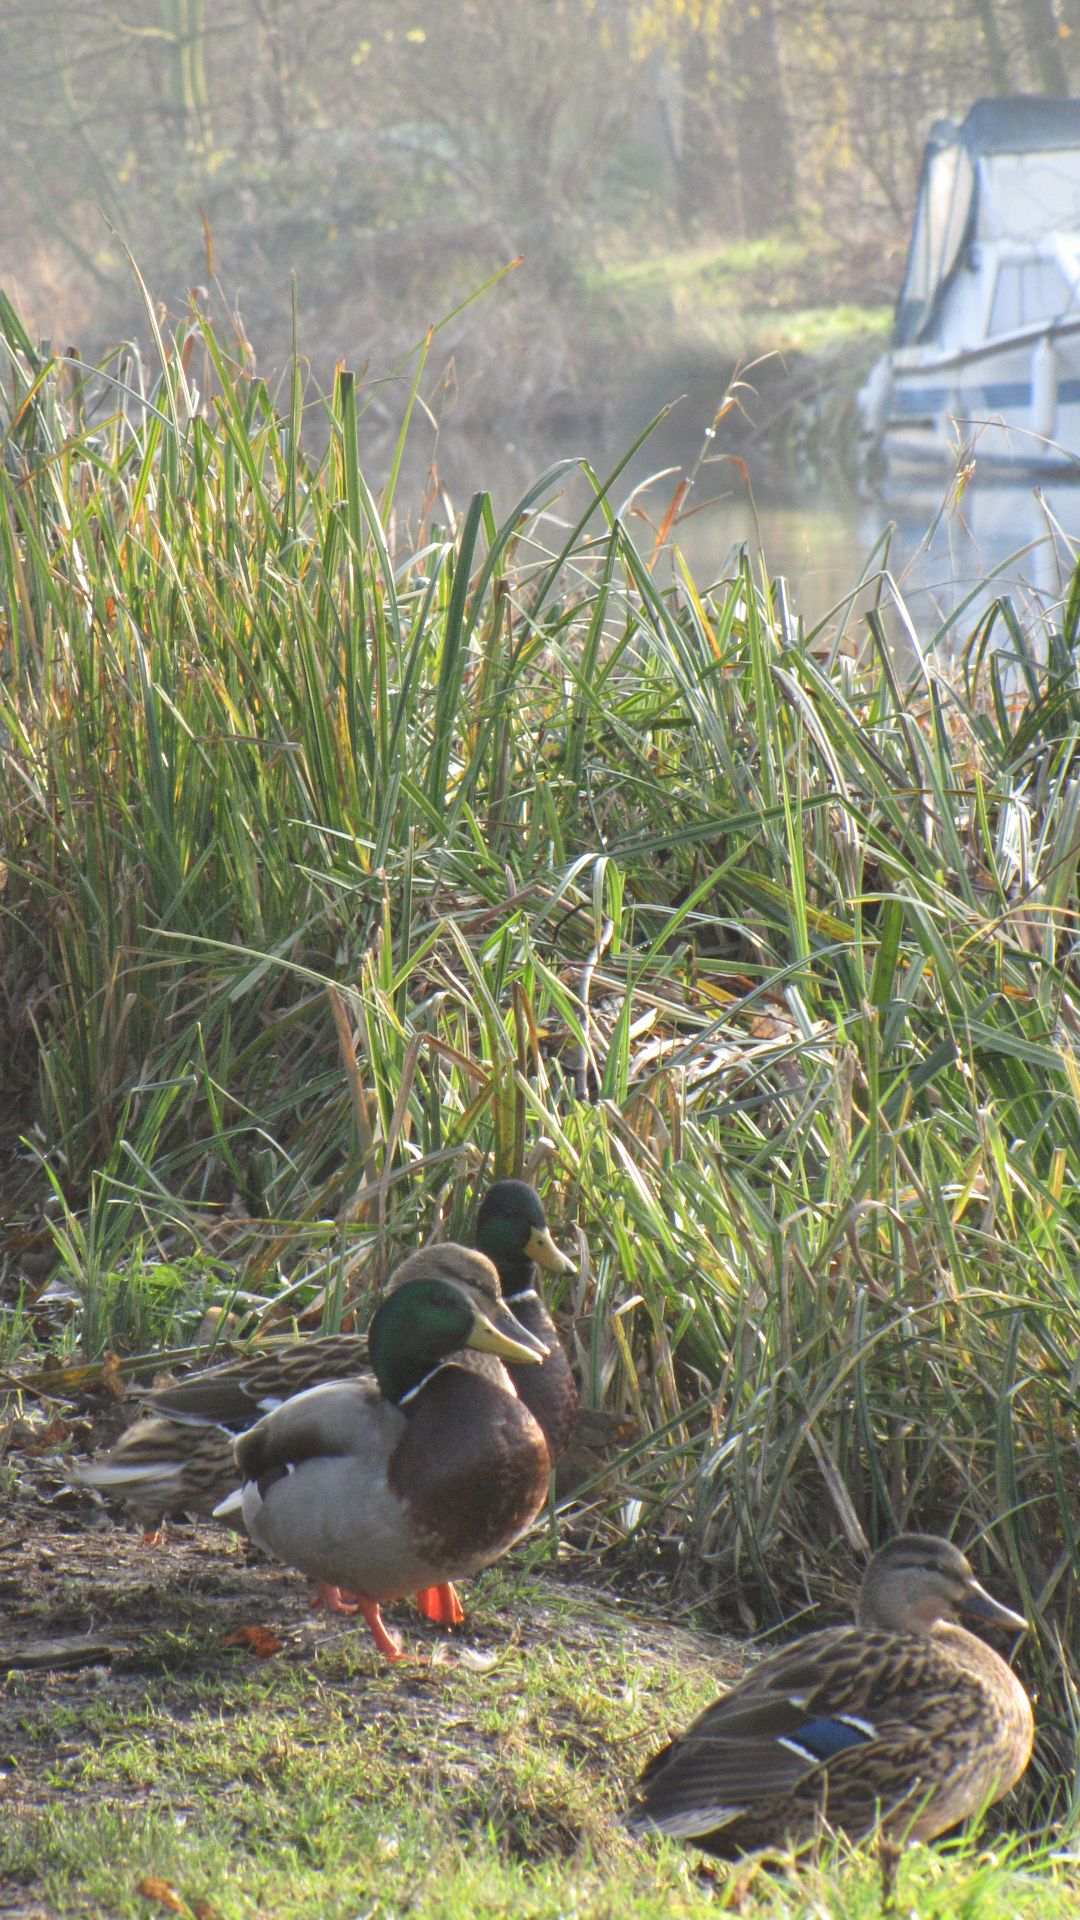 Nr Heybridge Basin, Essex, UK - Ducks by the canal